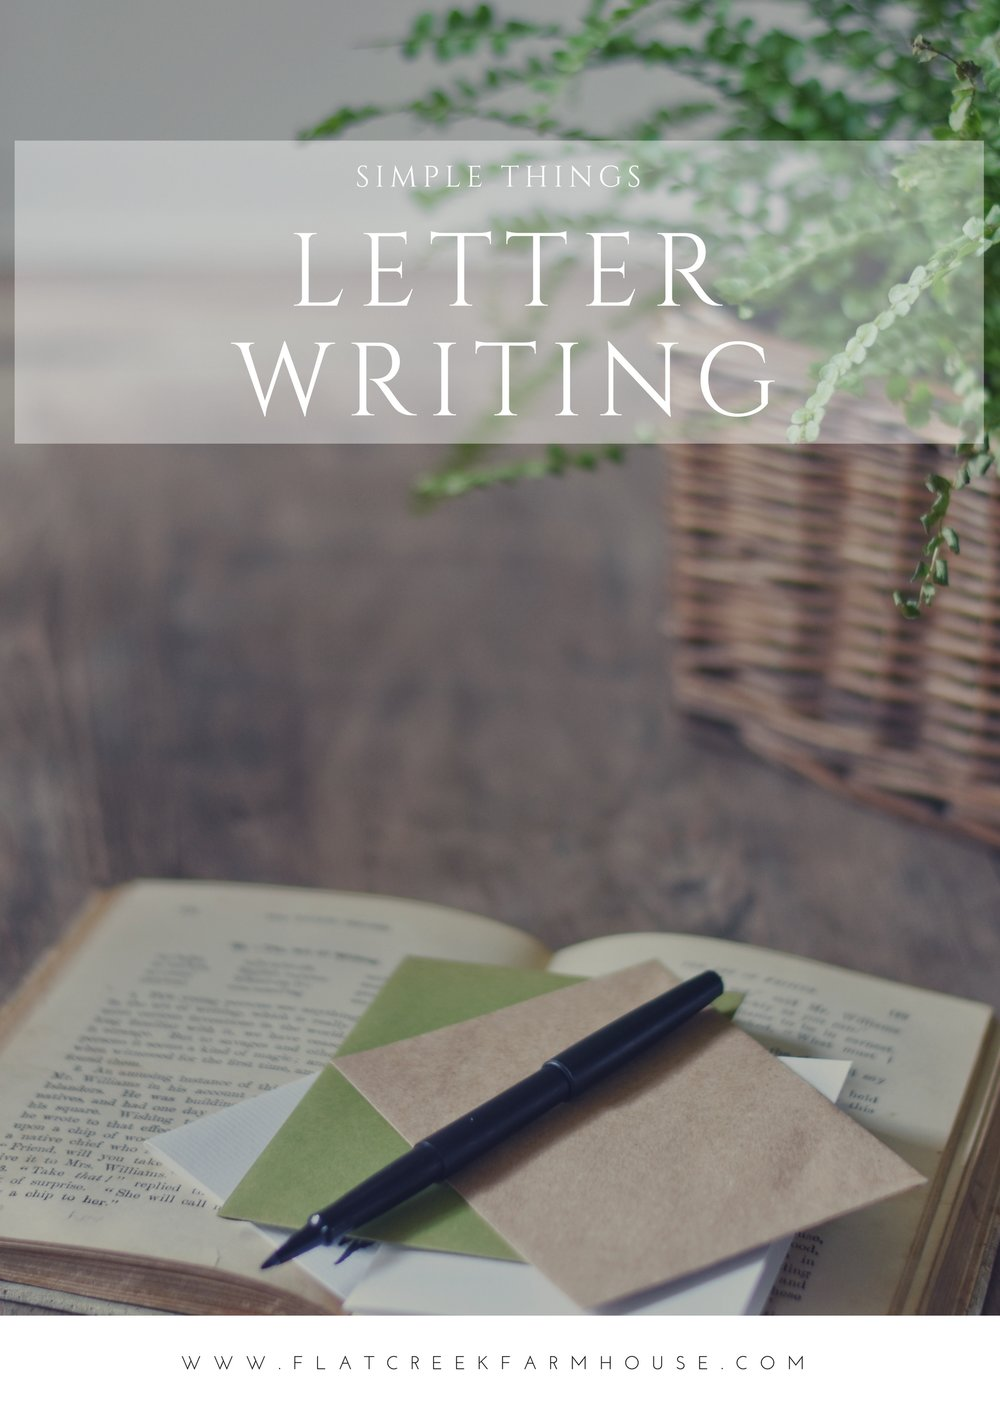 The lost art of letter writing and why we should revive it